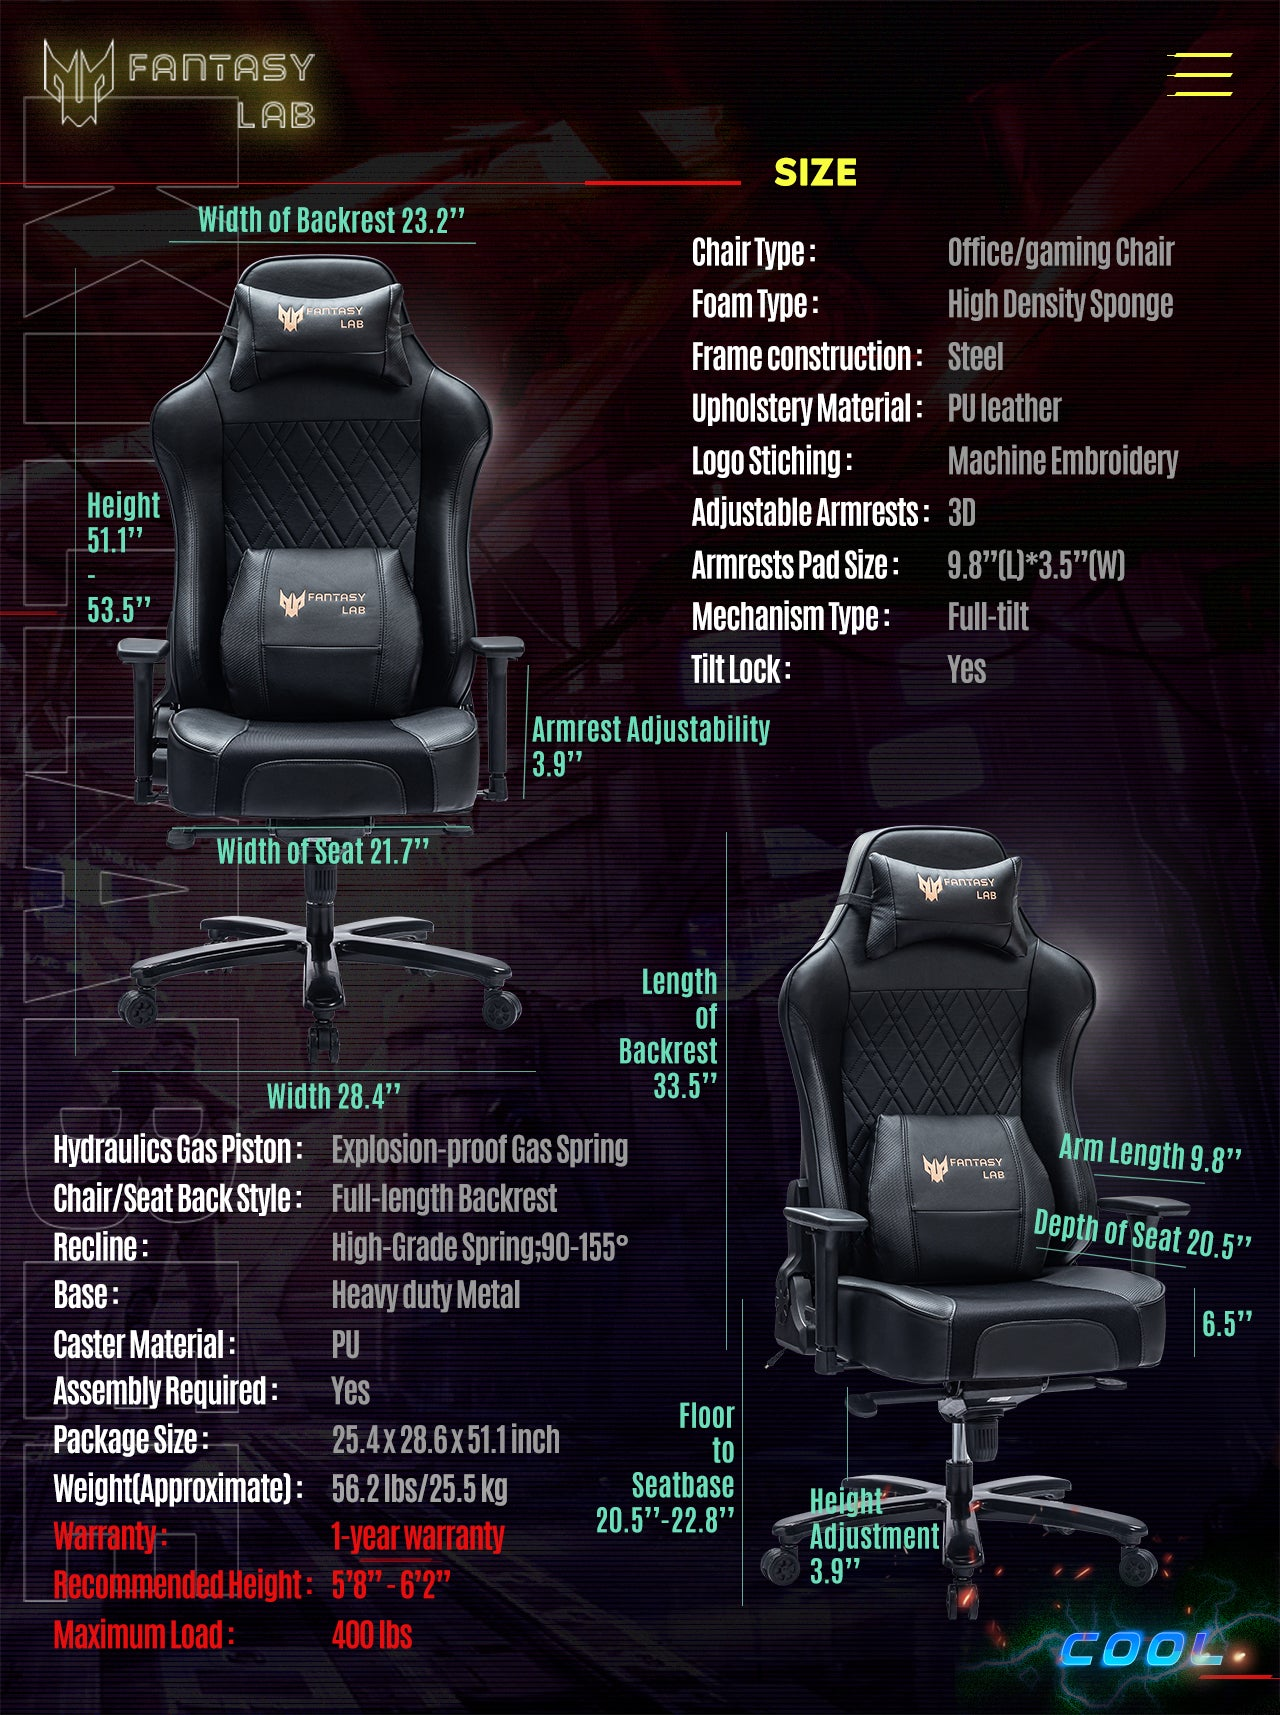 FANTASYLAB Cool Series Racing Style Big and Tall Black Gaming Chair Specifications